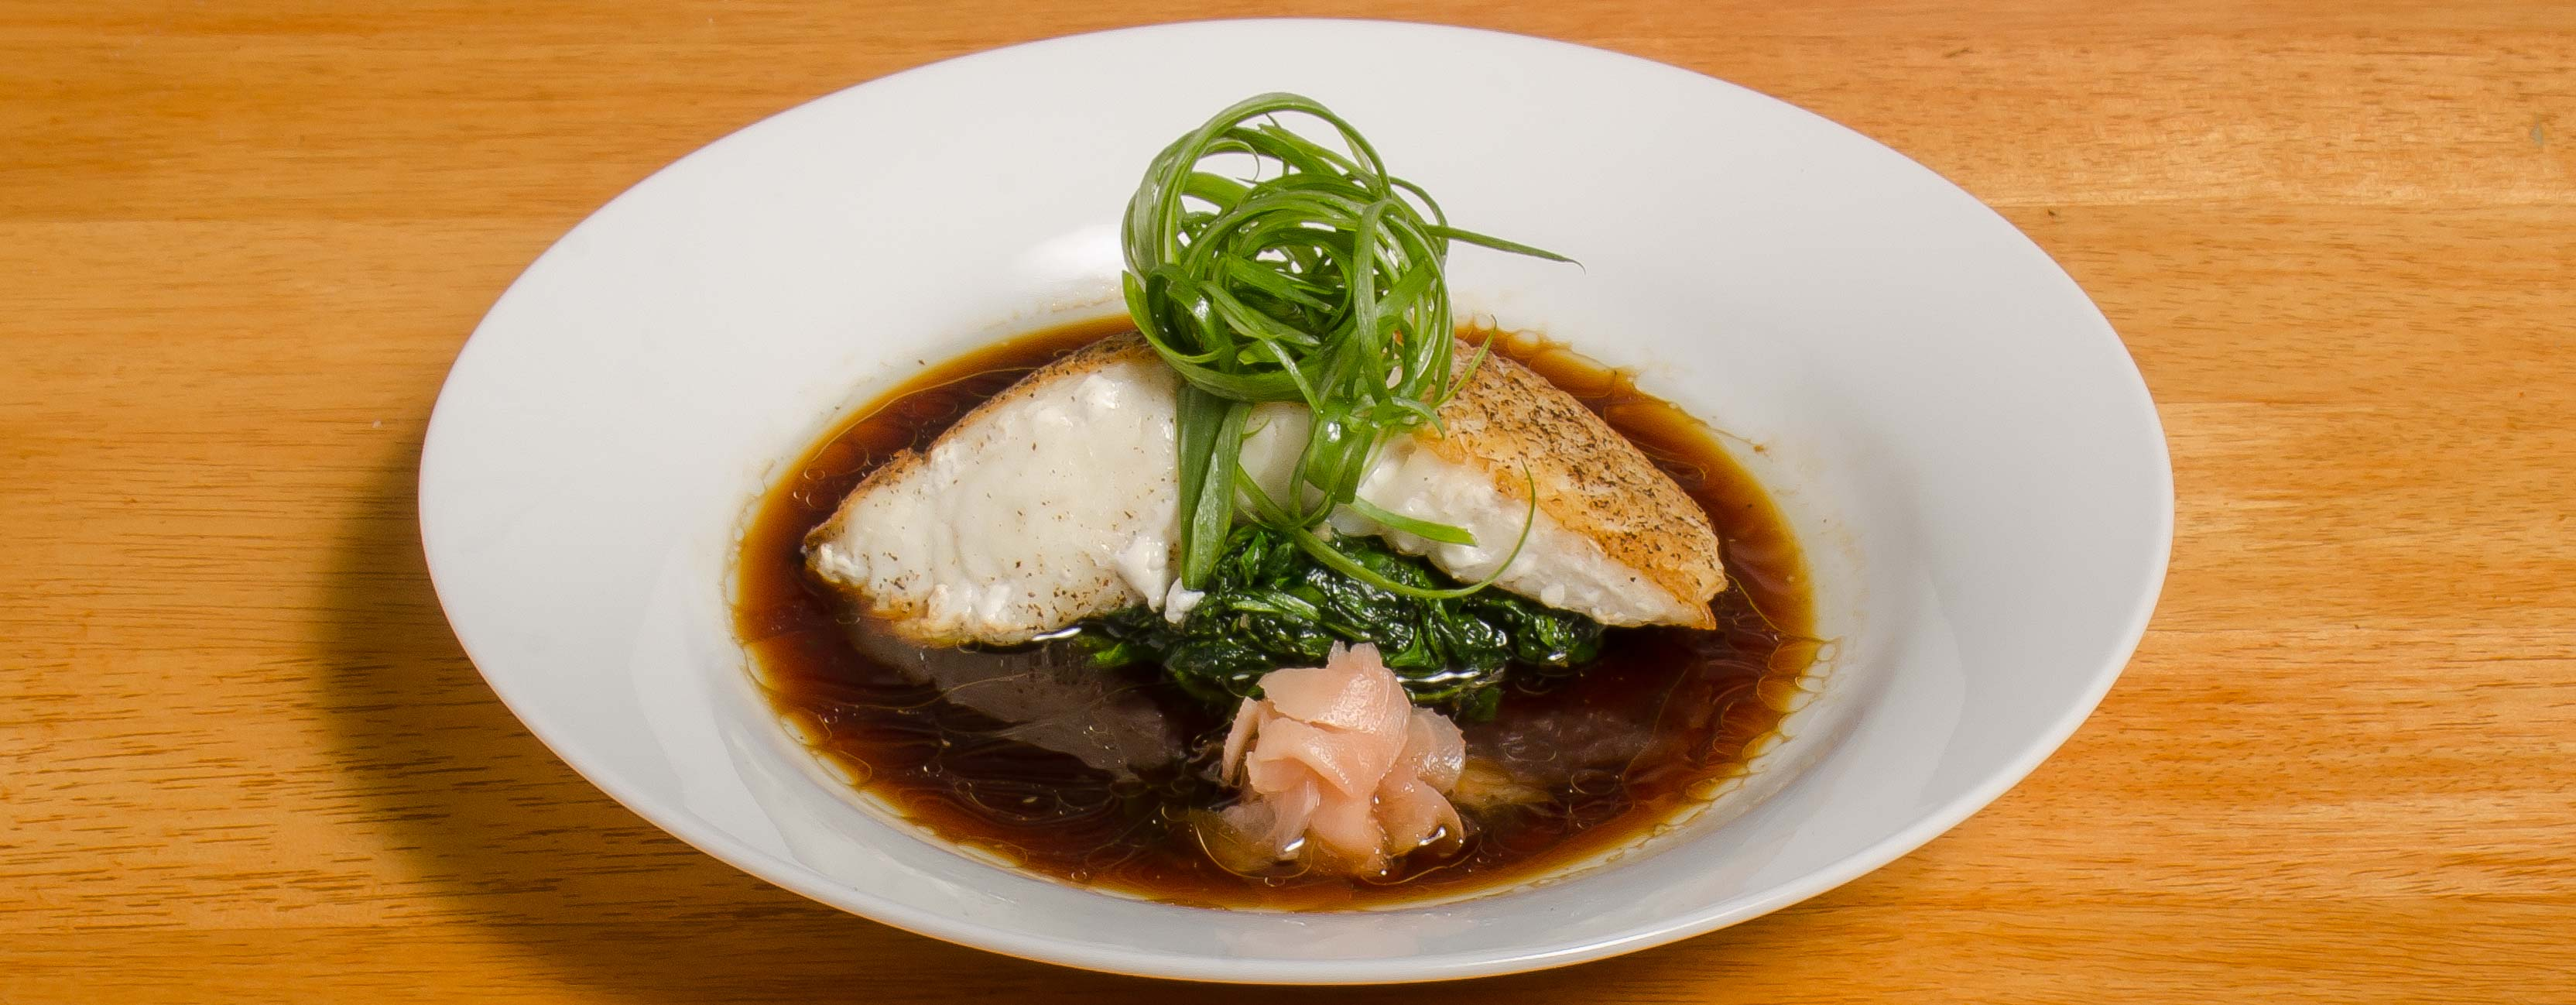 Halibut in Hong Kong Sauce